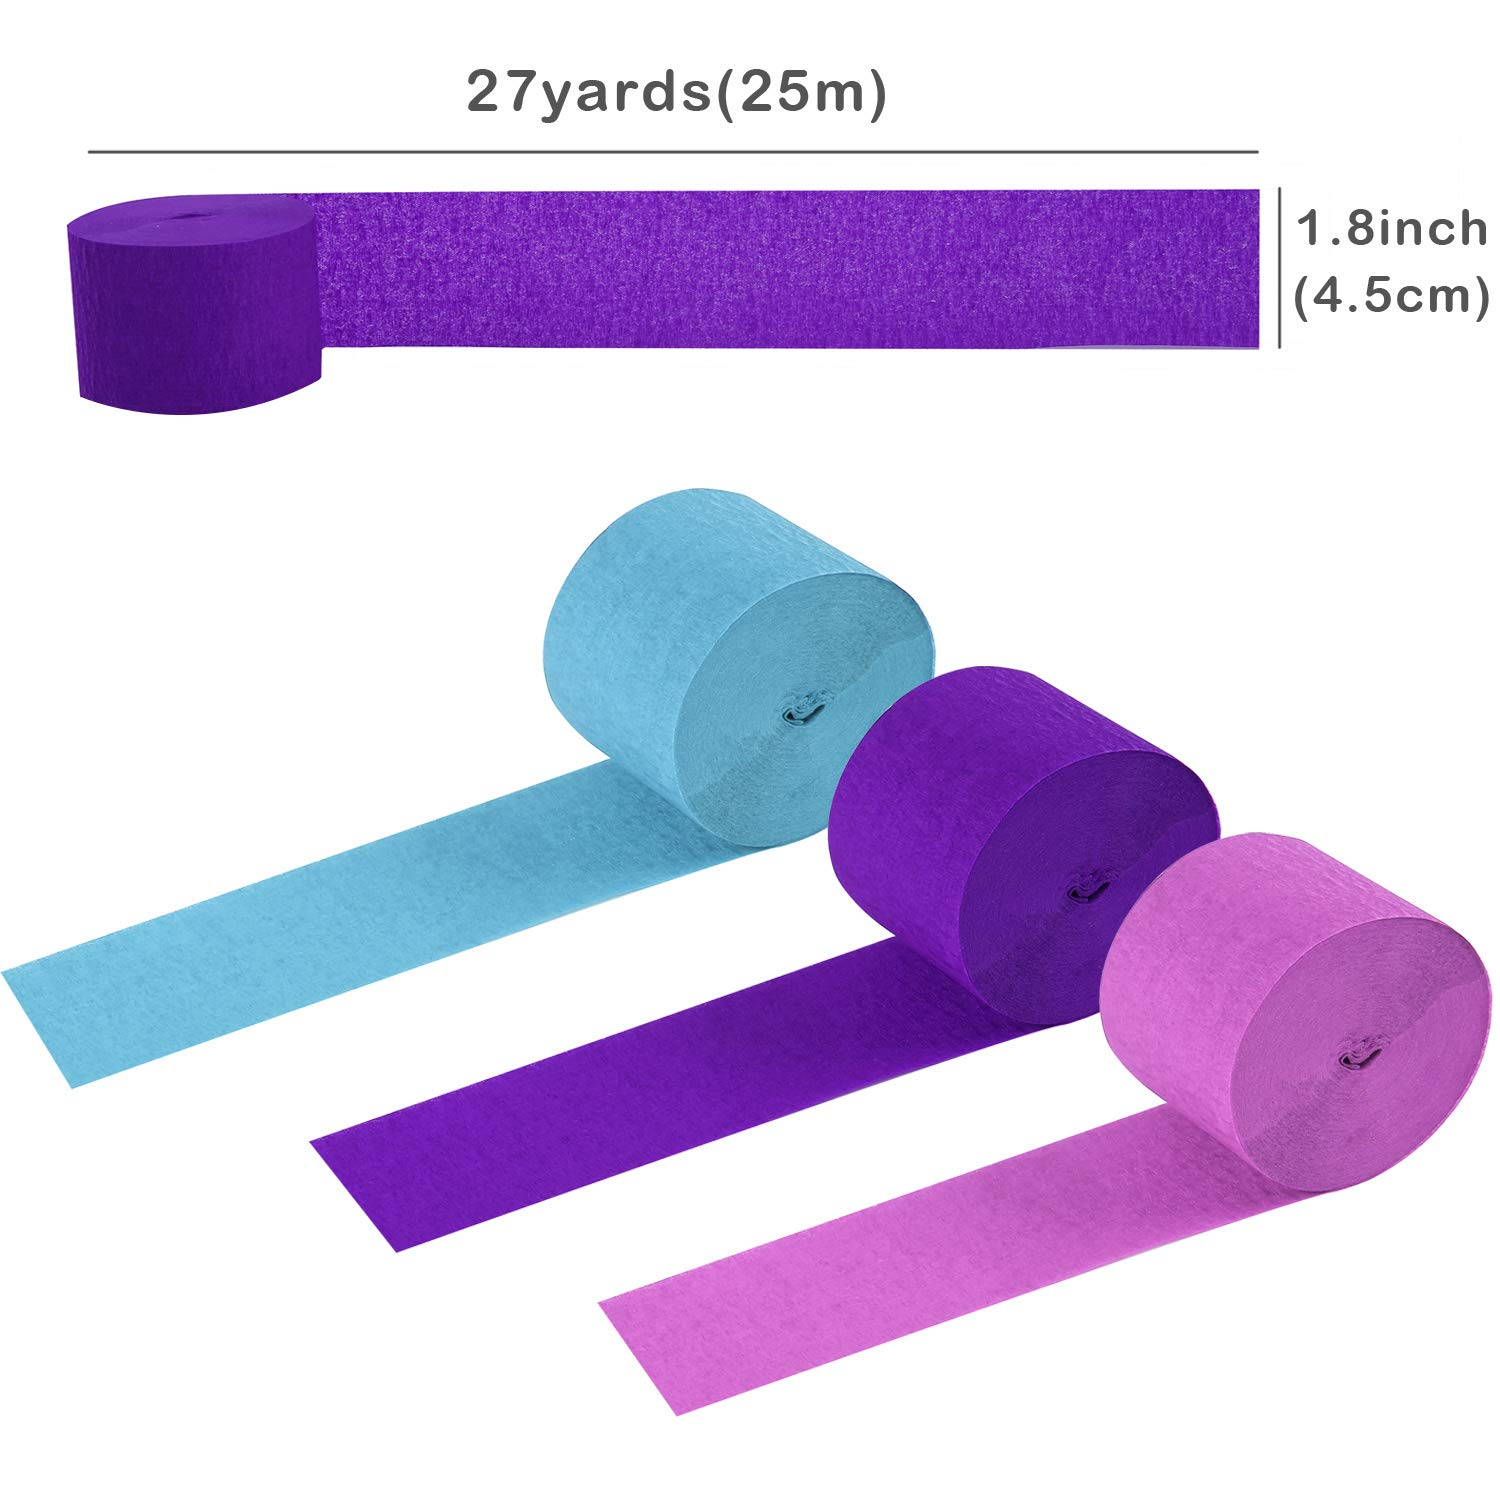 Teemico 12 Rolls Mermaid Crepe Paper Streamer Lavender Purple Blue Tissue Paper for Mermaid Party Birthday Wedding Baby Shower Decor and DIY Crafts